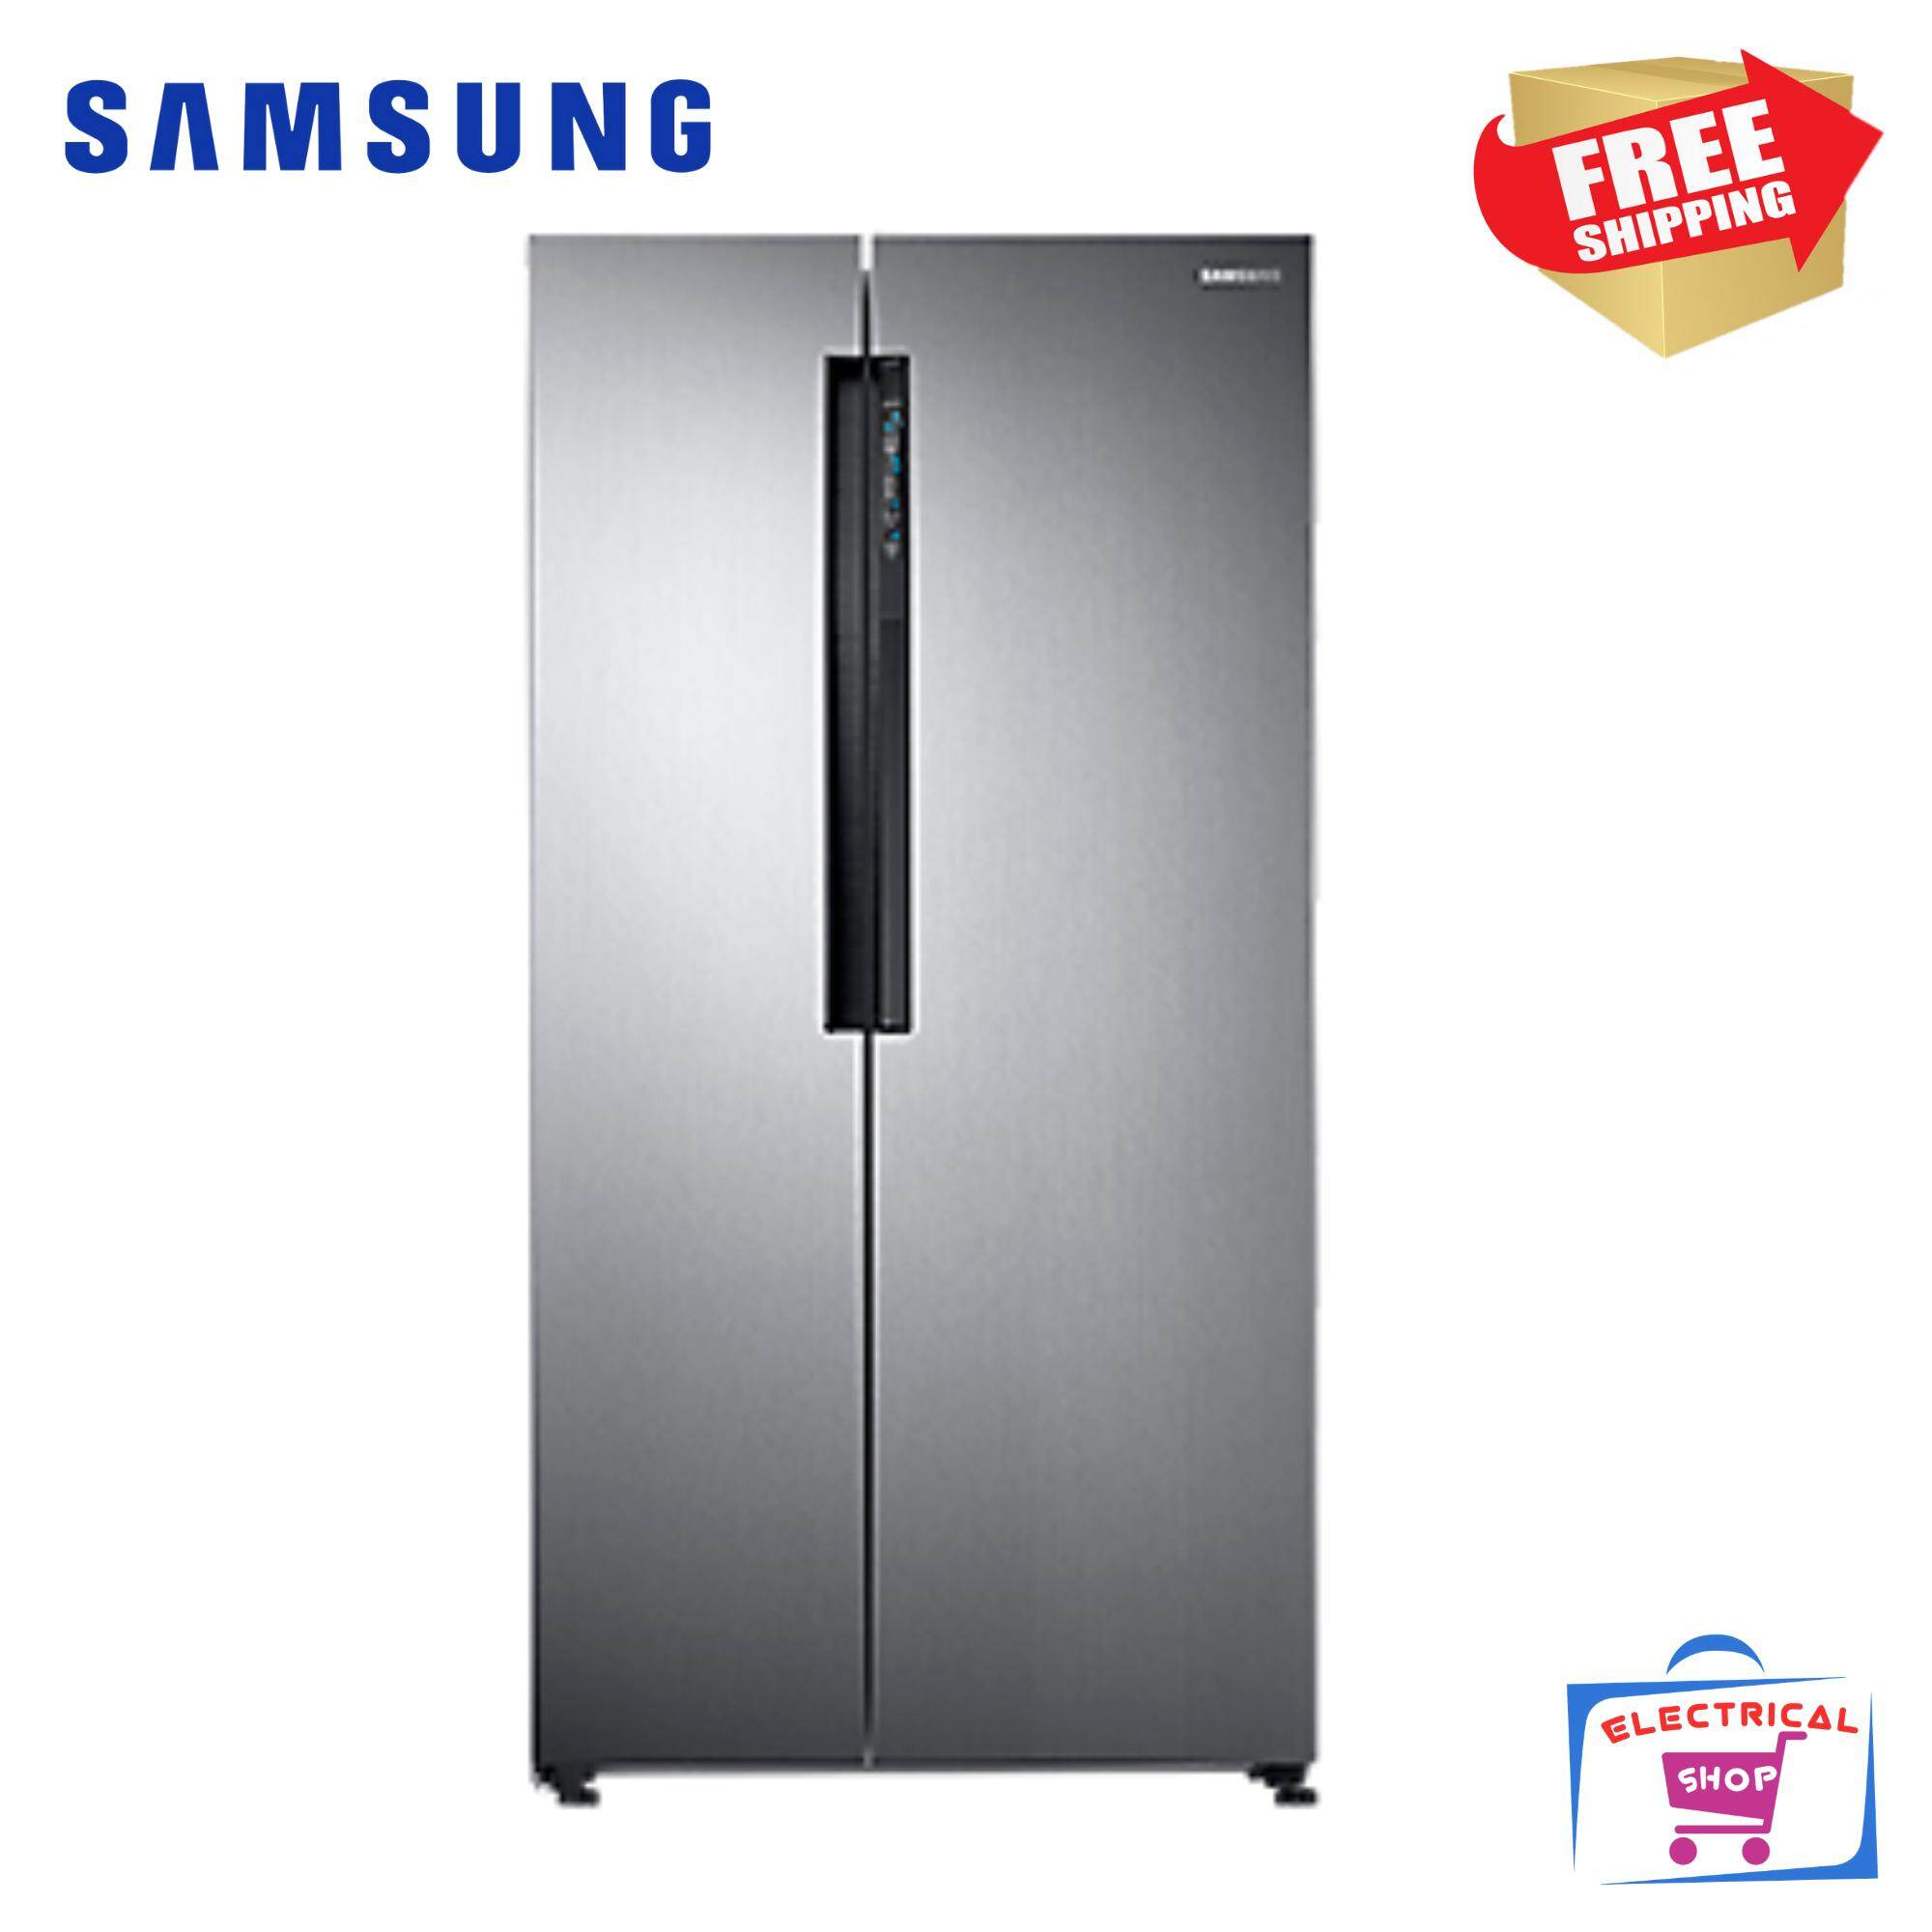 Samsung Fridge RS62K60A7SL Side by Side Inverter Fridge 680L RS62K60A7 with Twin Cooling Plus™ Refrigerator